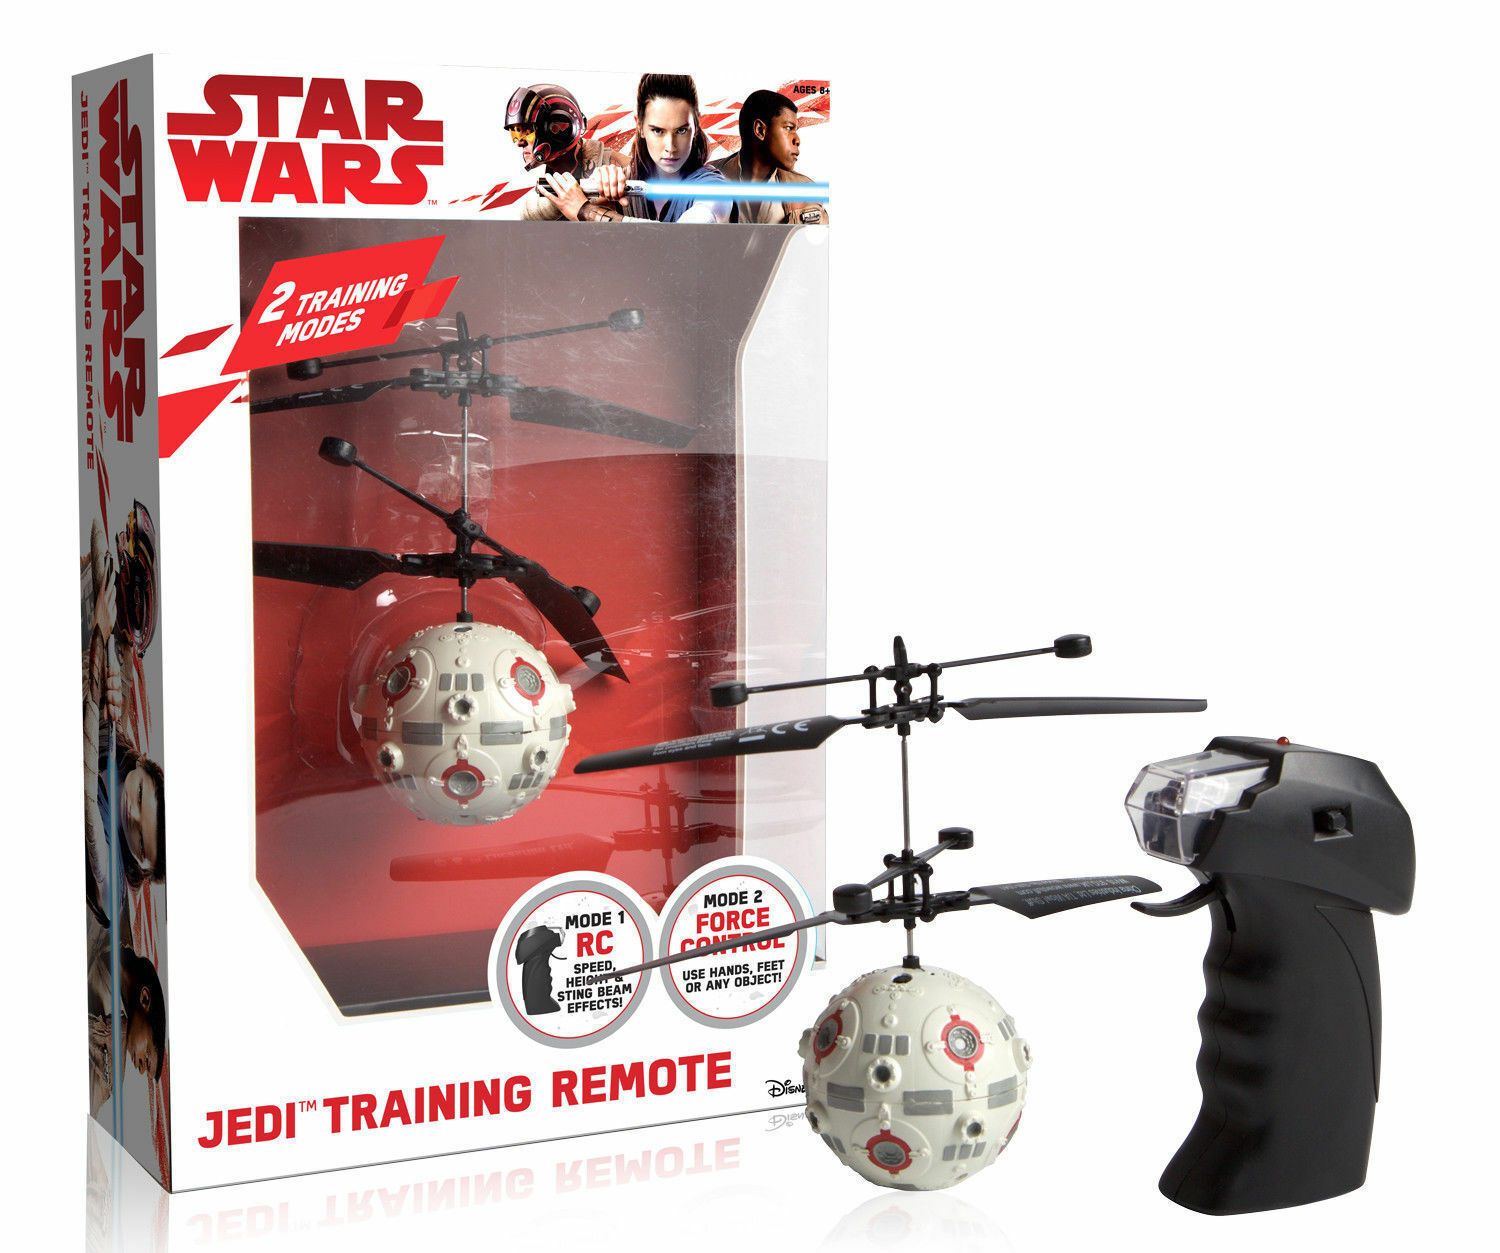 STAR WARS JEDI TRAINING REMOTE FLYING TOY - REMOTE OR HAND CONTROL BRAND NEW